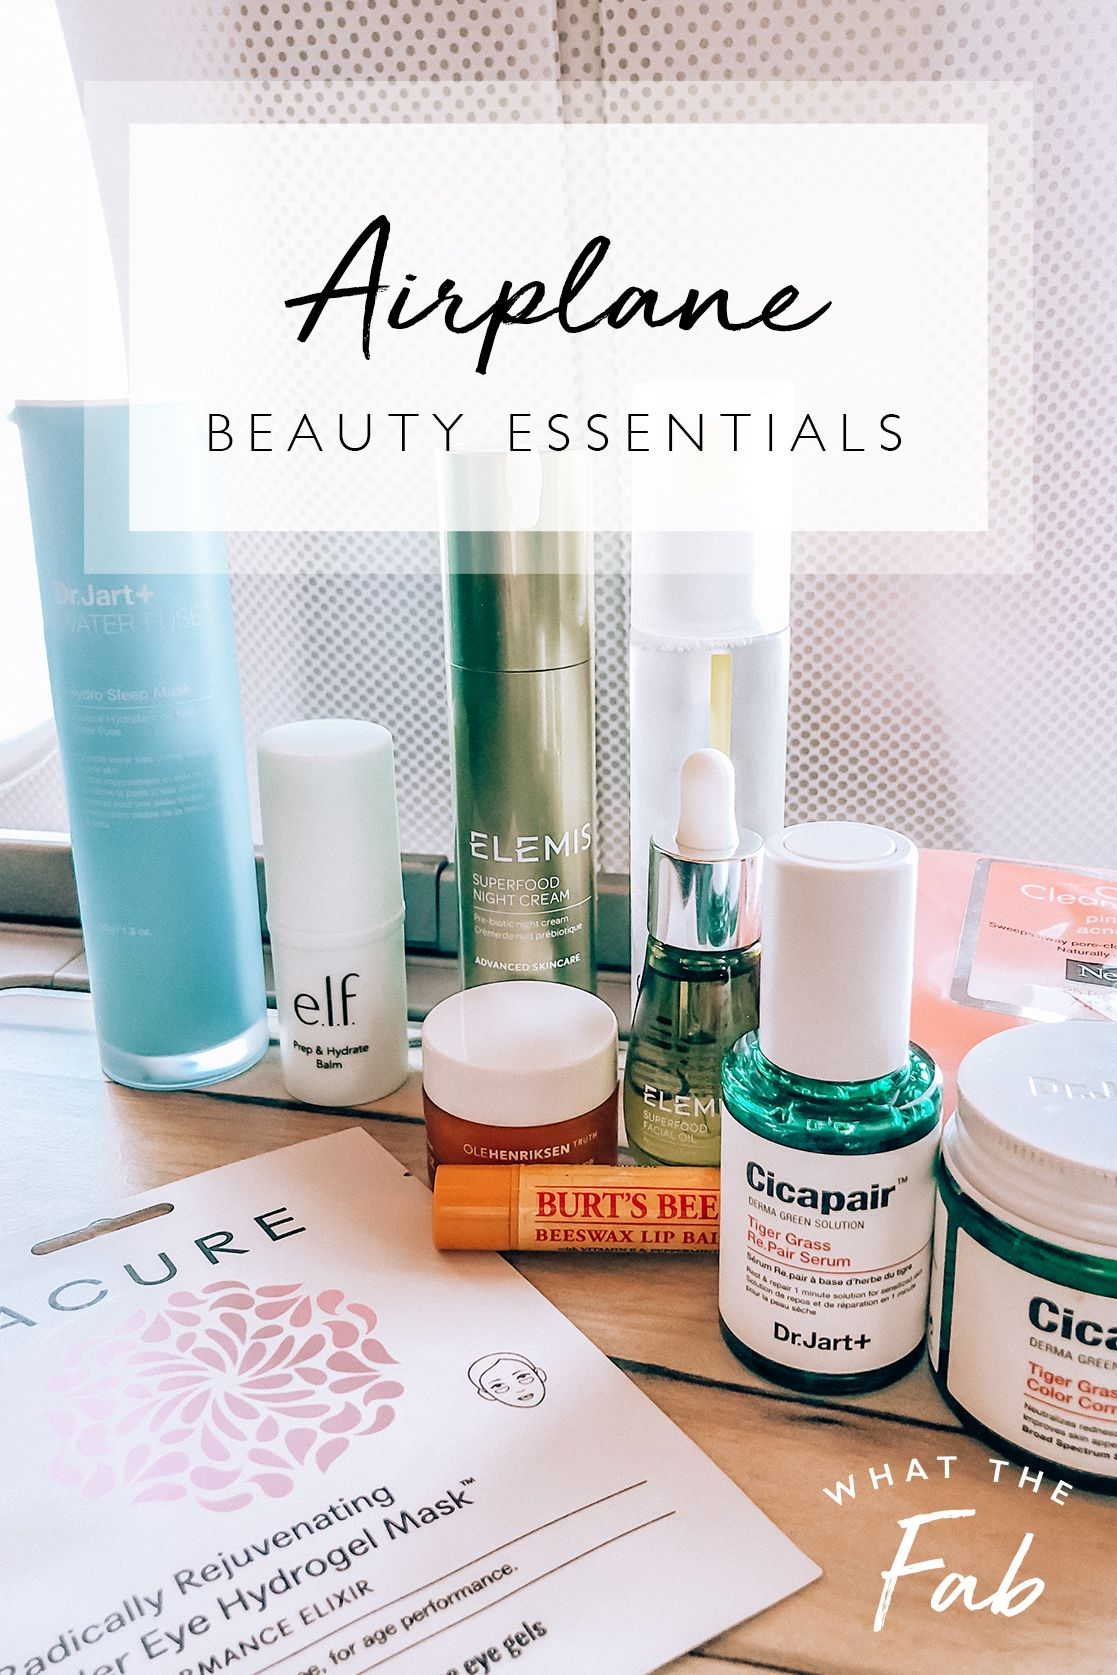 Airplane Beauty Essentials | Beauty & Travels | What The Fab #beautyessentials